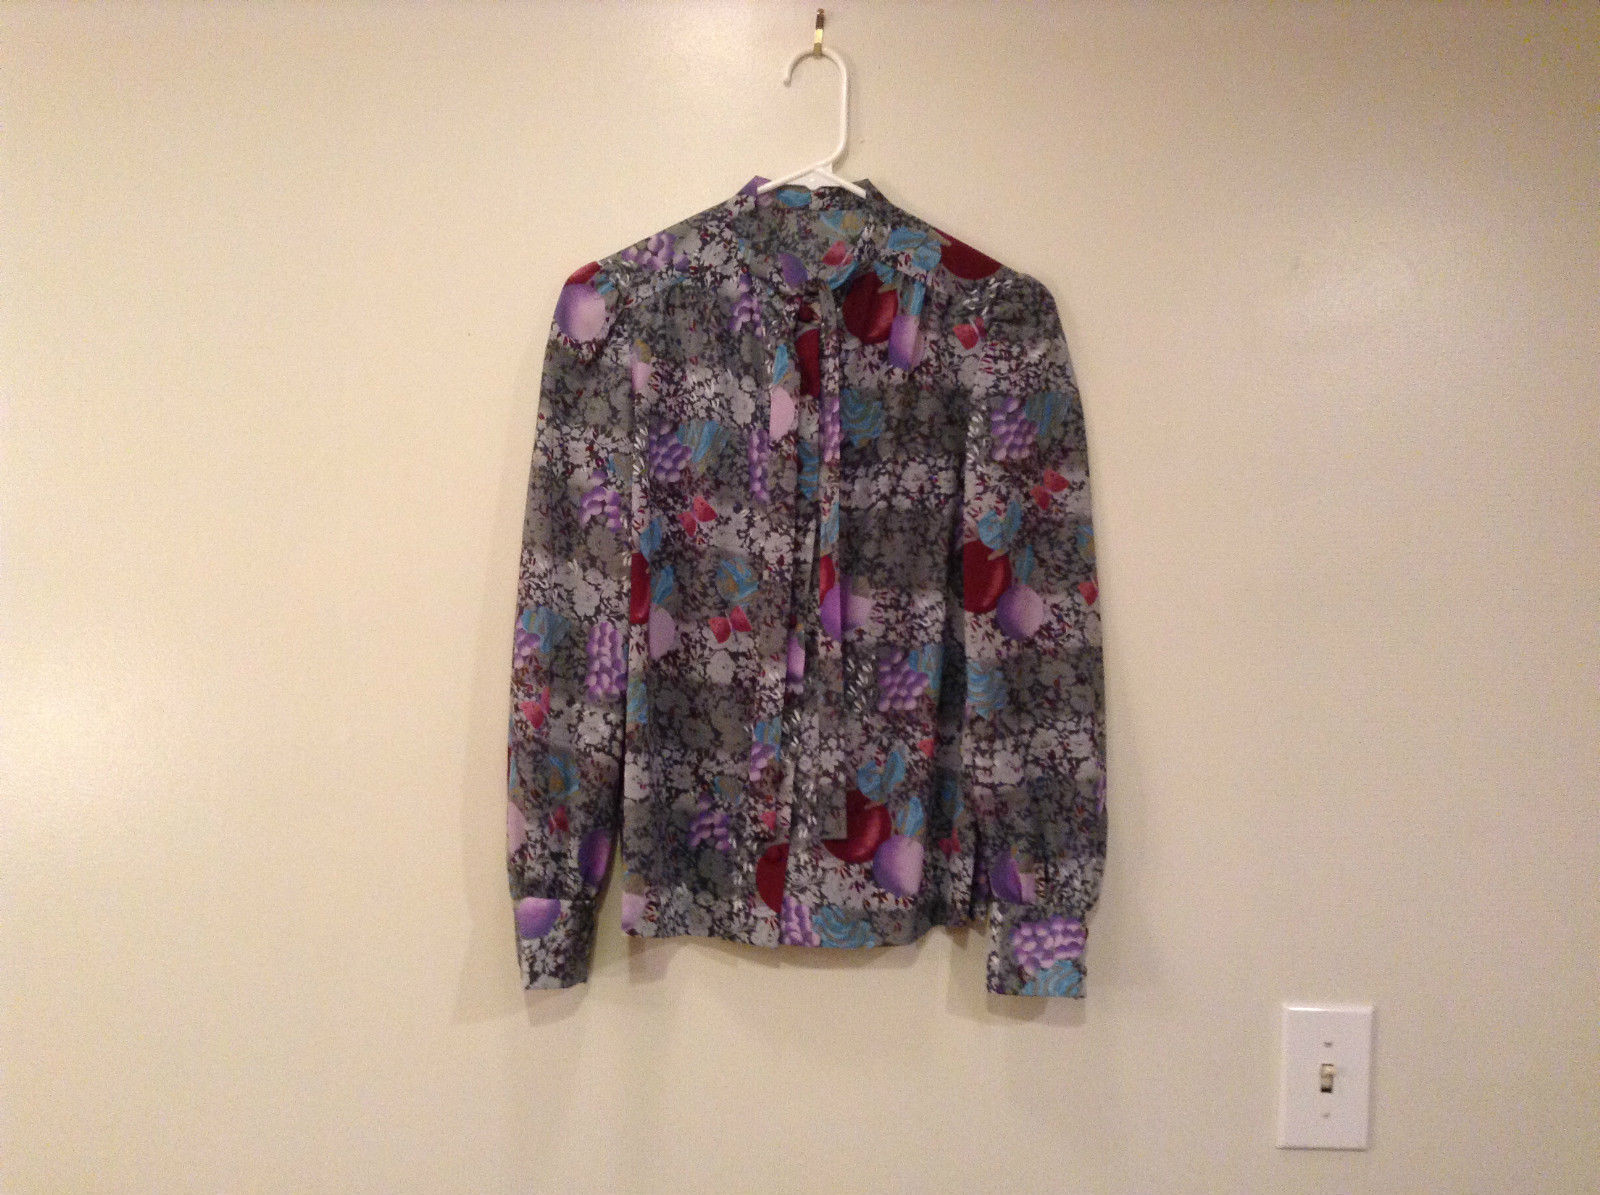 Handmade Blouse No Tags Gray with Flowers Fruits Side Slits Button Up Front